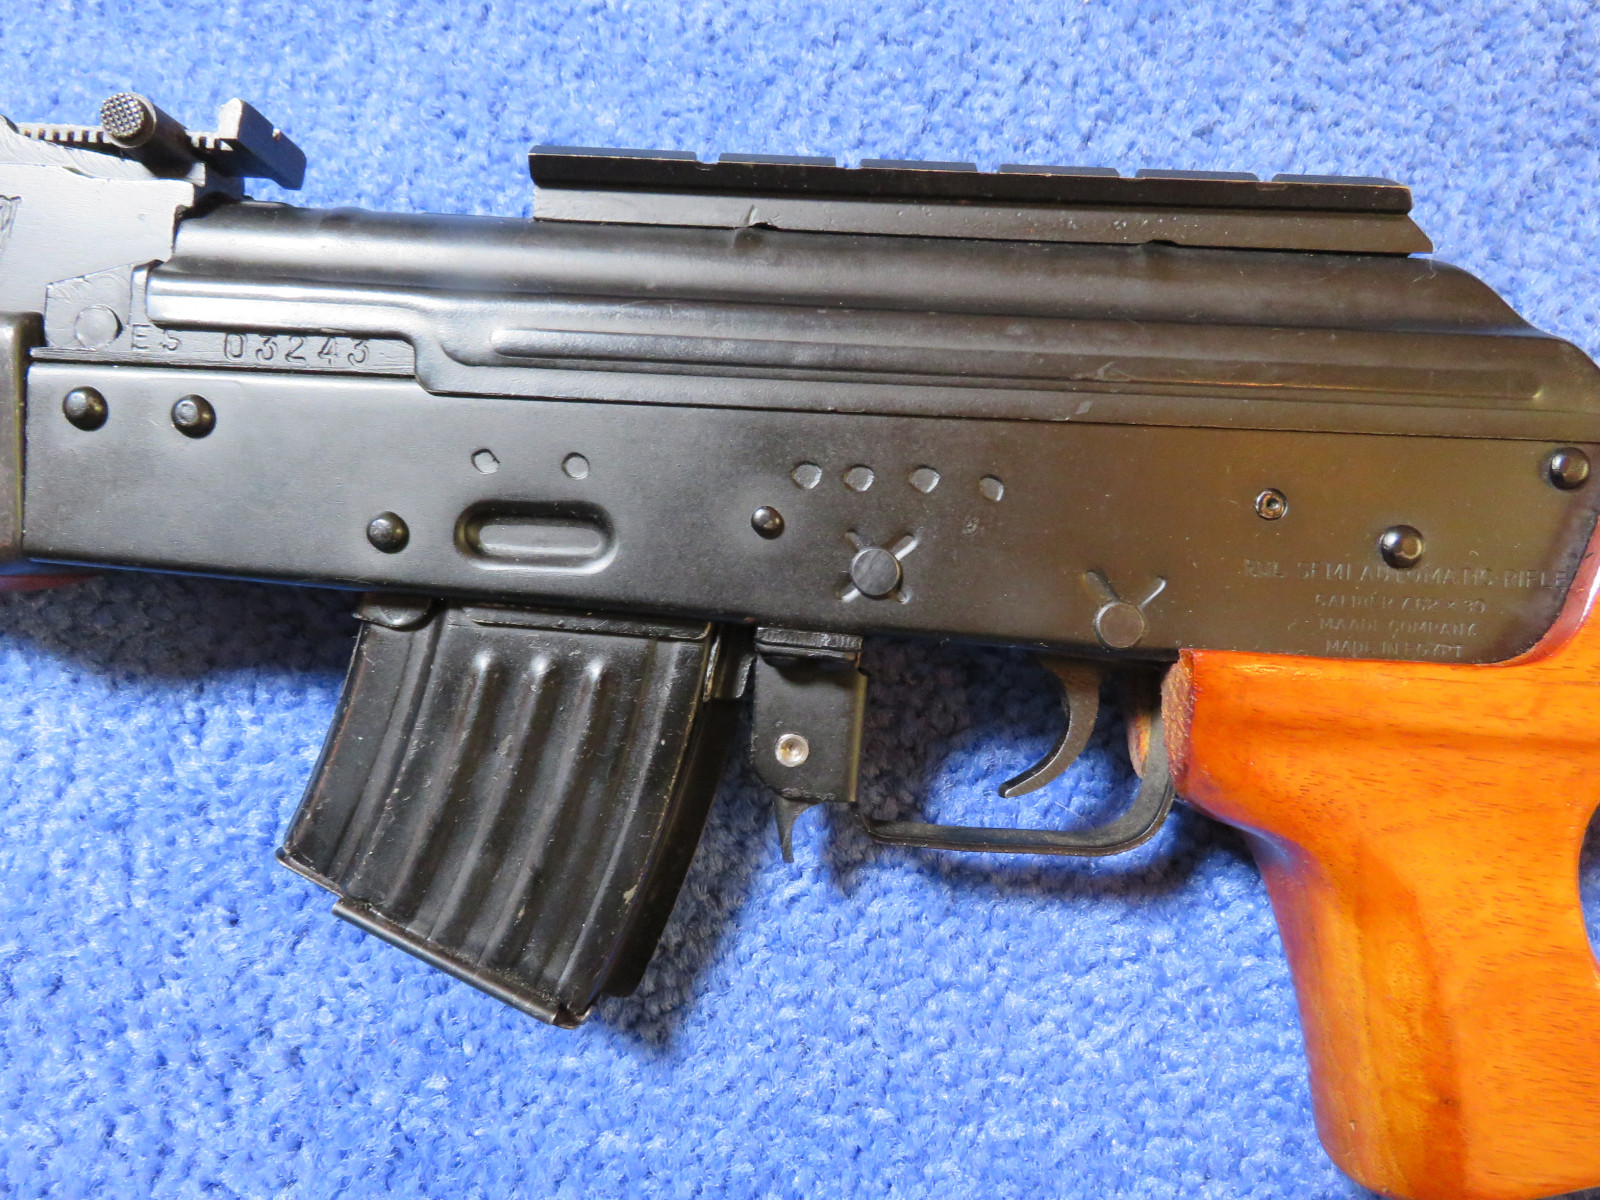 MAADI Corporation      AK-47 Semi-Automatic Rifle ES U3243 - Image 4